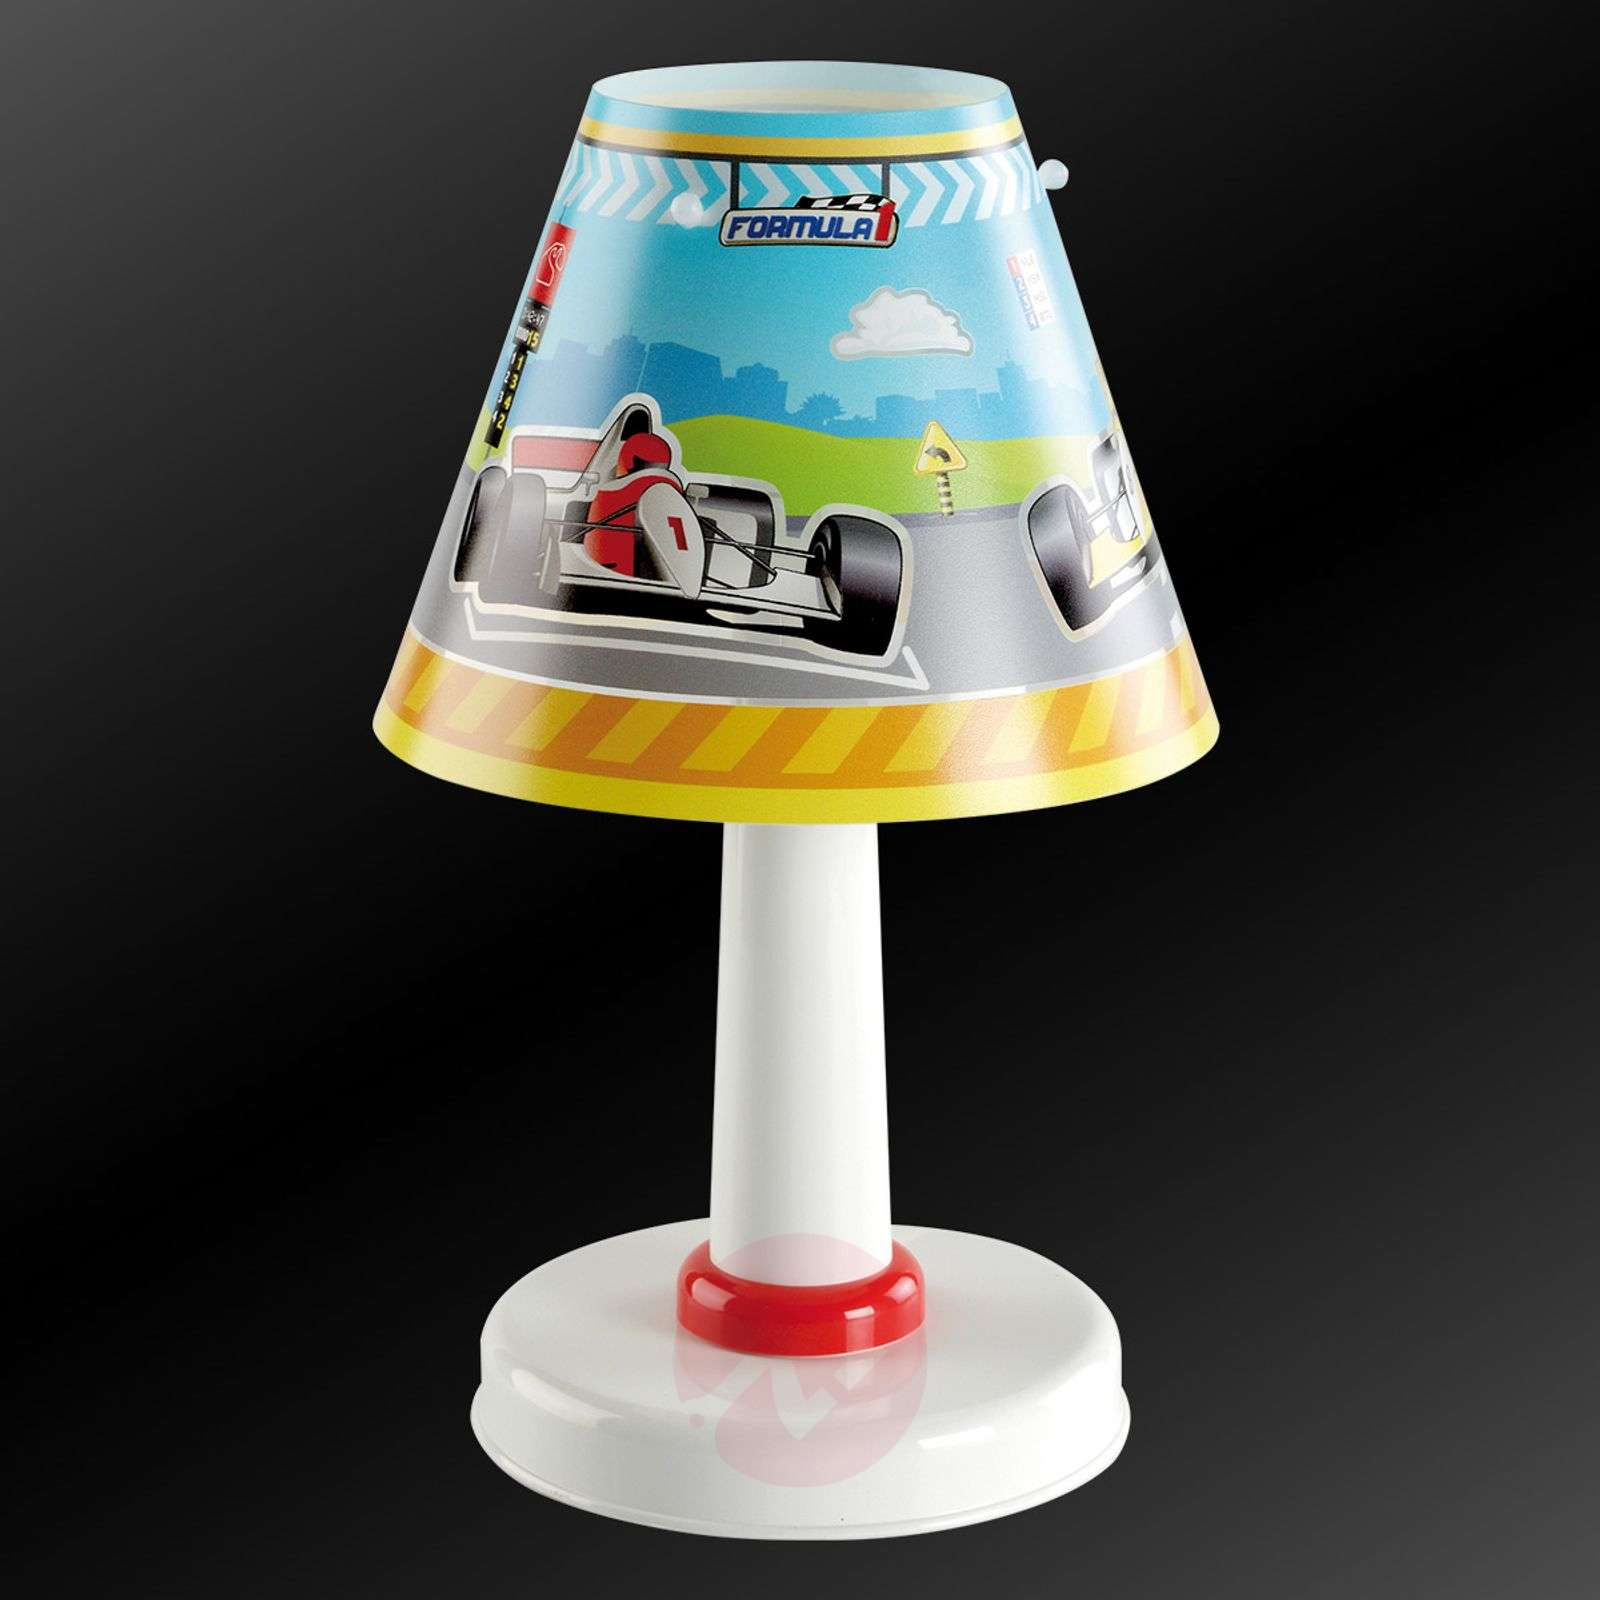 Formula 1 night stand lamp for a childs room-2507296-01